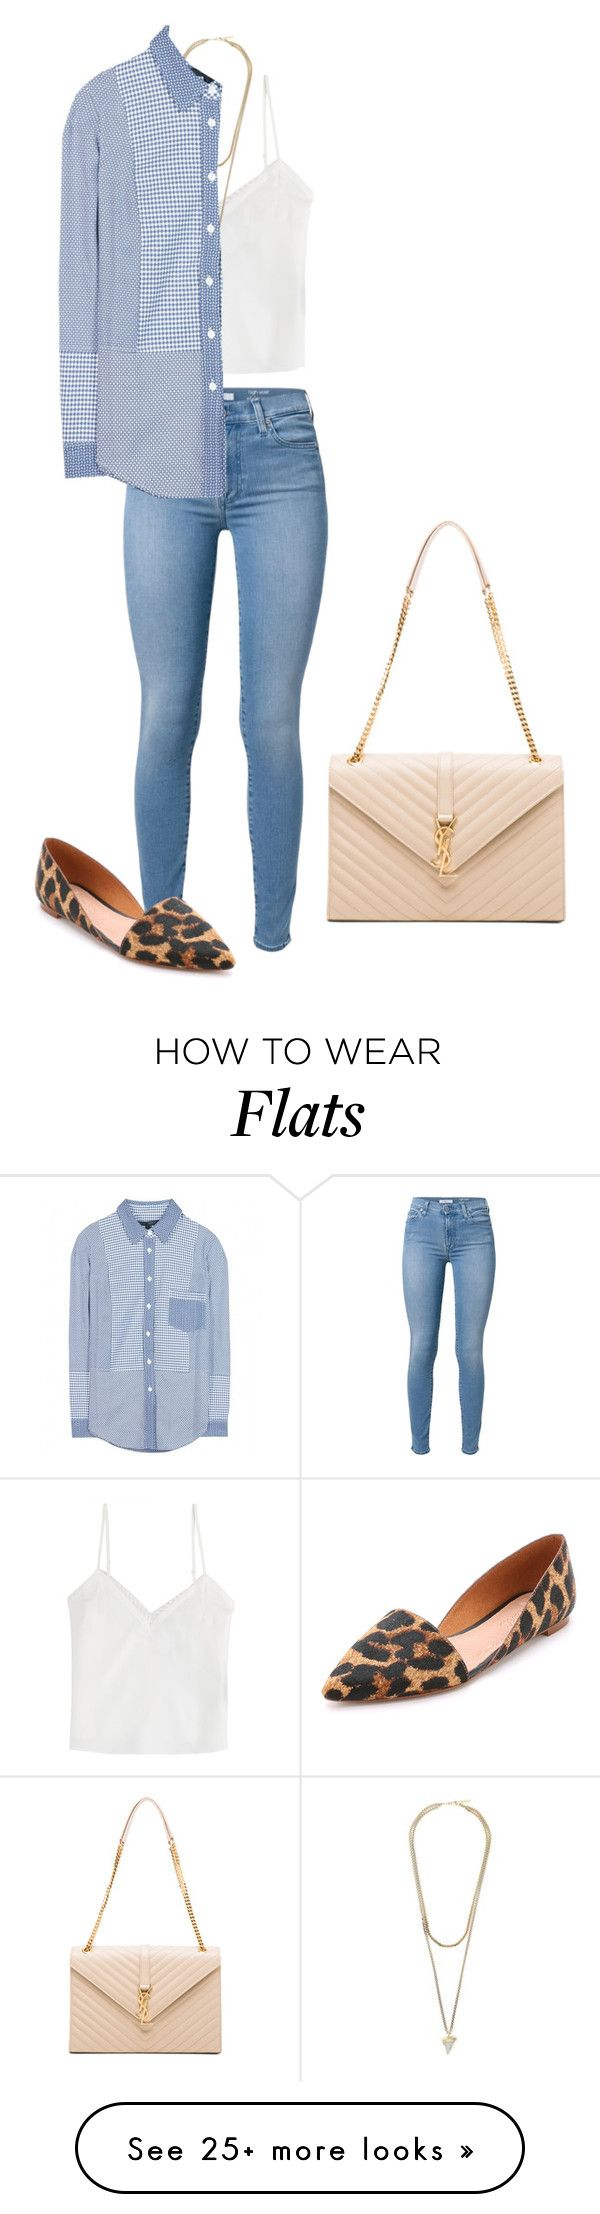 """480"" by m-e-rod on Polyvore featuring The Kooples, 7 For All Mankind, Givenchy, dVb Victoria Beckham, Madewell and Yves Saint Laurent"